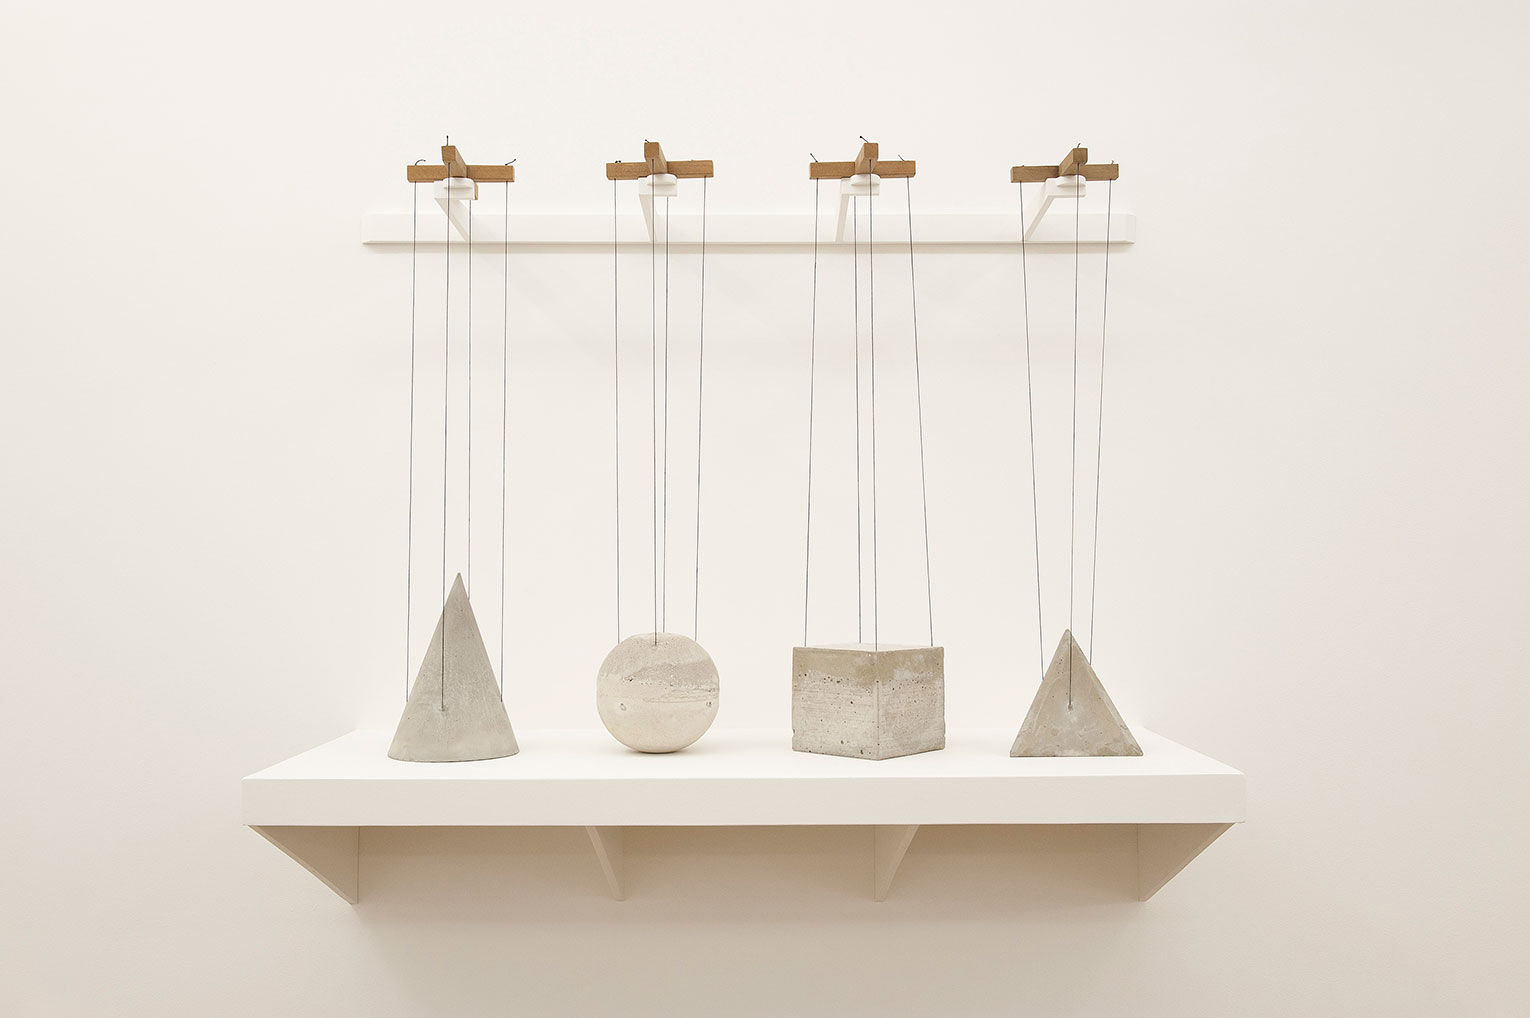 <b>Title: </b>Divining Rods<br /><b>Year: </b>2010<br /><b>Medium: </b>Concrete, string and wood<br /><b>Size: </b>85 x 122 x 46 cm